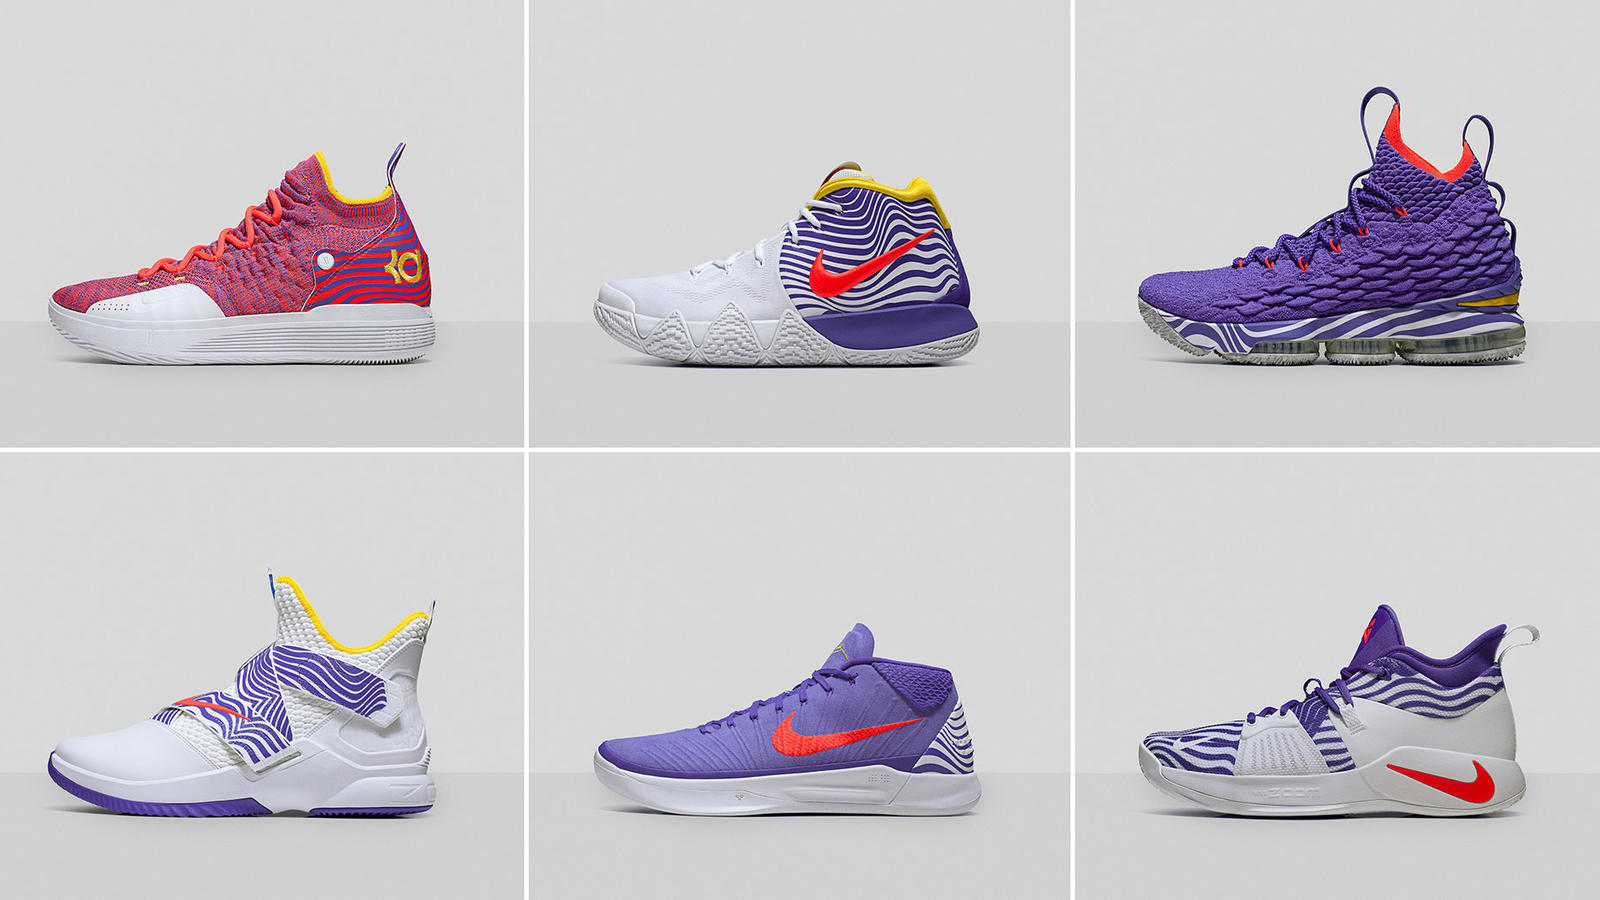 Leia no relacionado barril  Nike Unveils Purple 2018 WNBA All-Star Game PE Collection - WearTesters